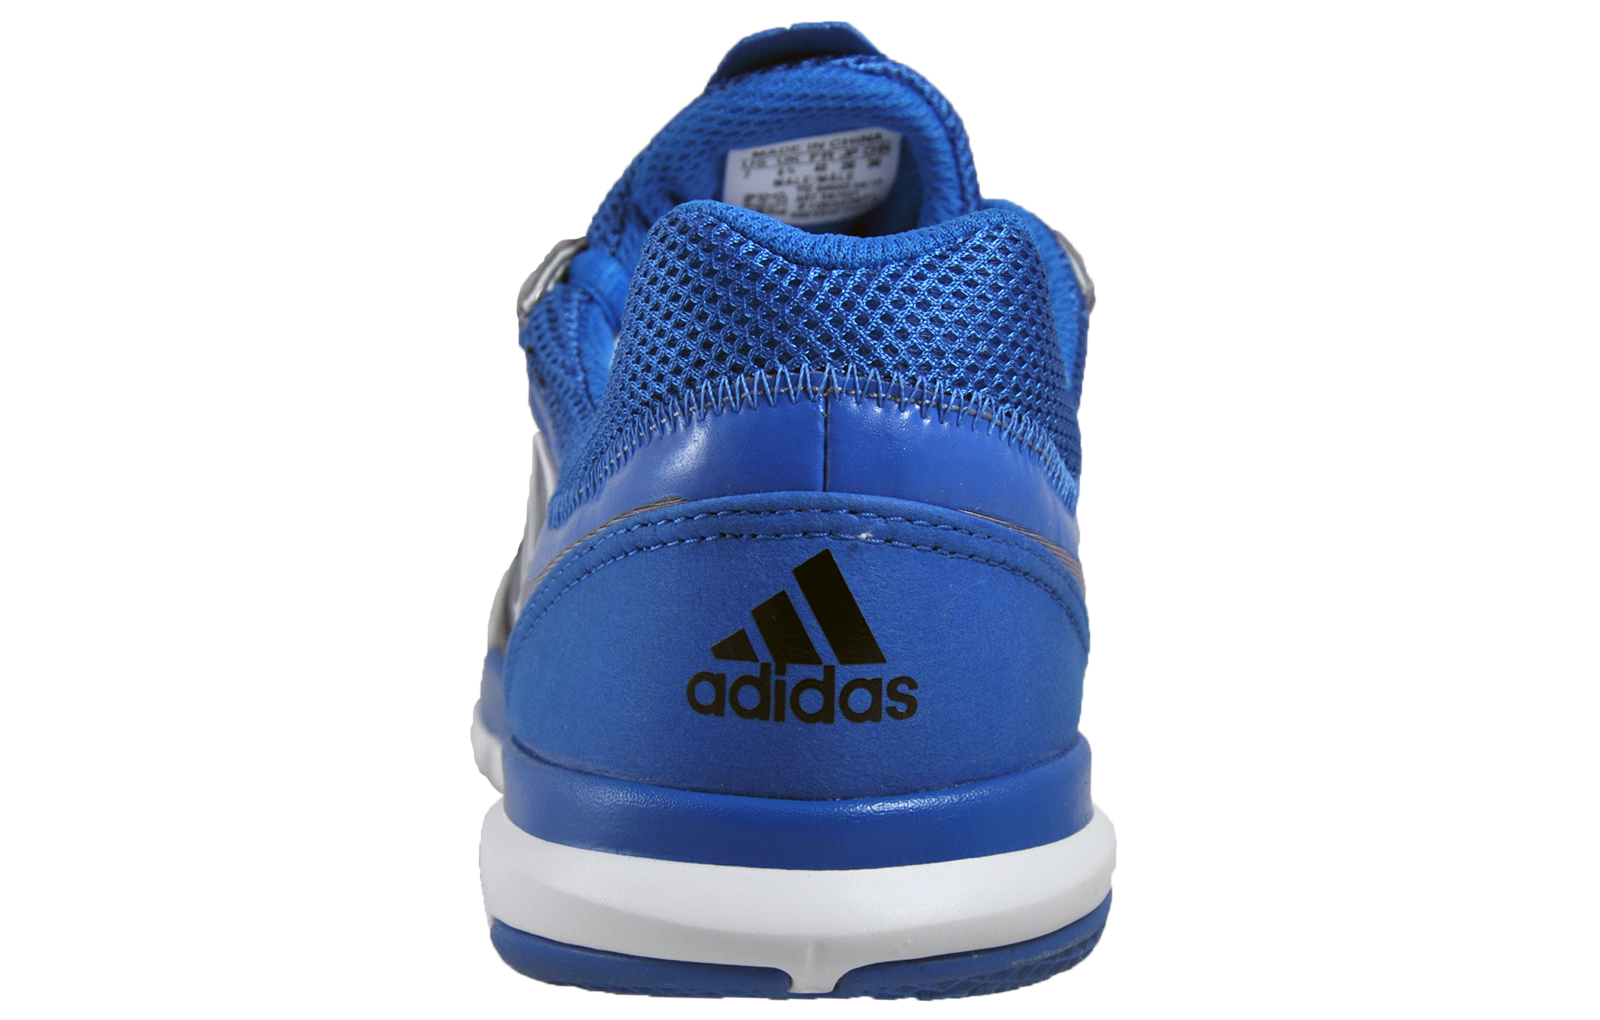 Adidas Barefoot Shoes Online India